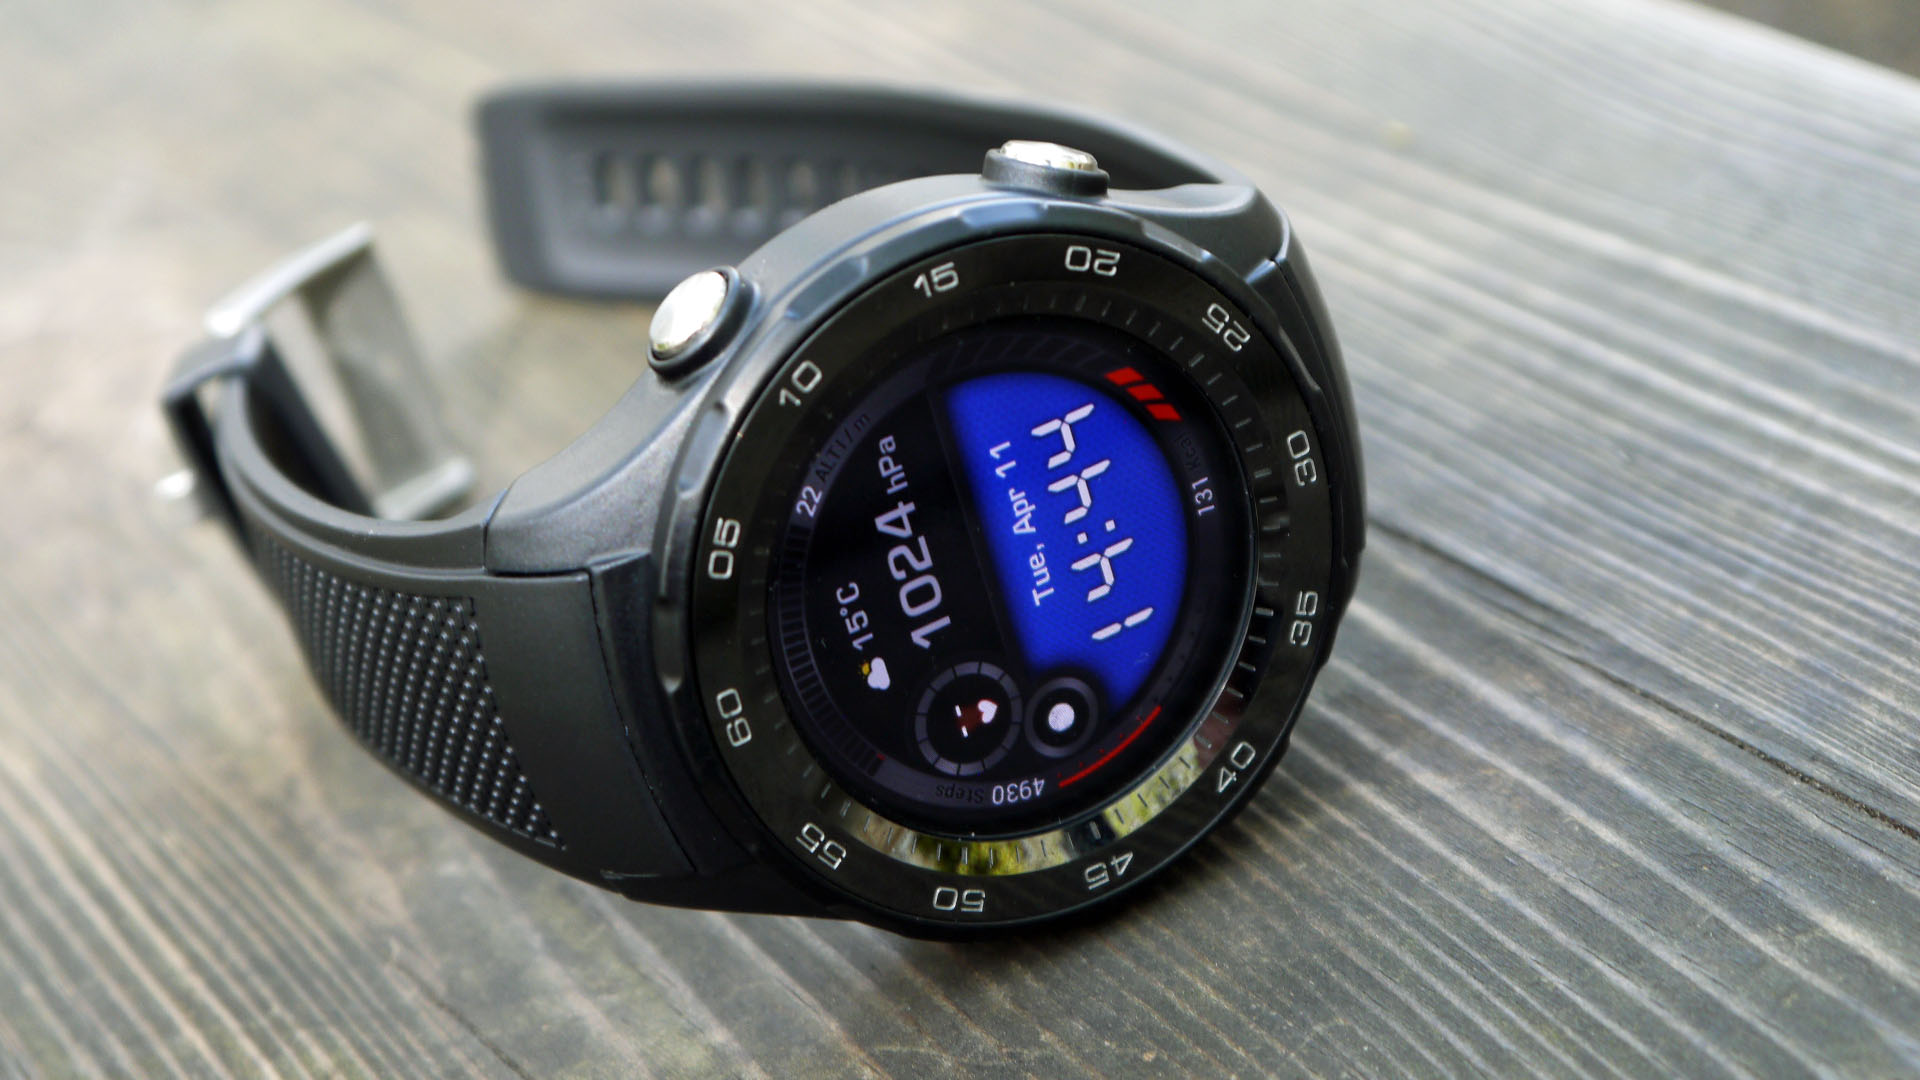 The Best Cheap Smartwatch Prices And Deals For Cyber Monday 2018 Trendly News Listennow Everyday 100shortnews Toptrendings Popularnews Reviews Trendlynews